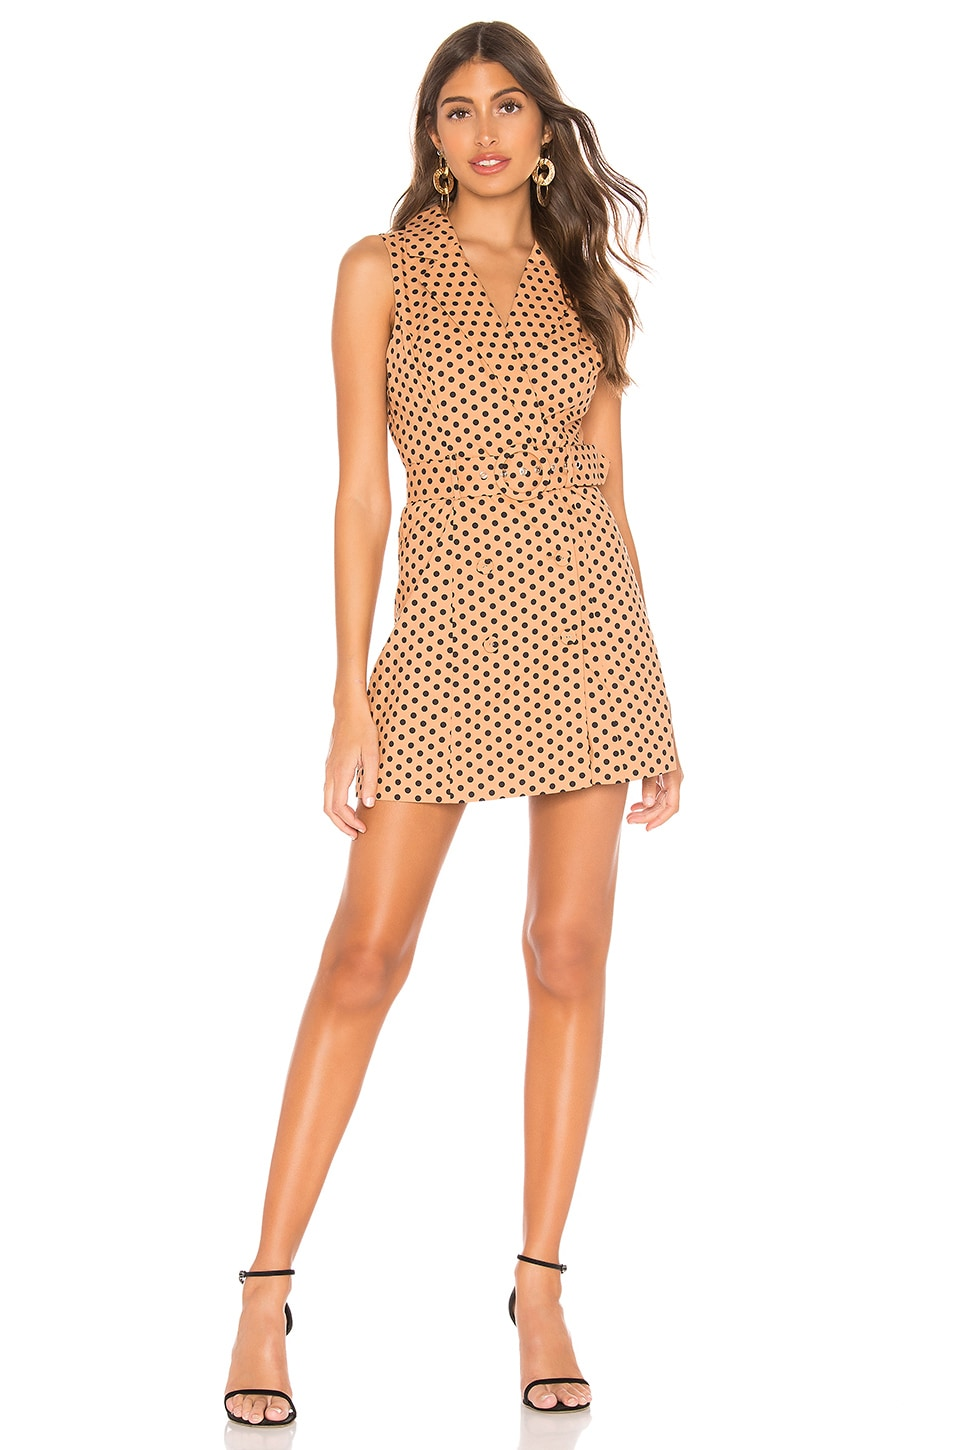 MAJORELLE Leona Mini Dress in Tan & Black Dot